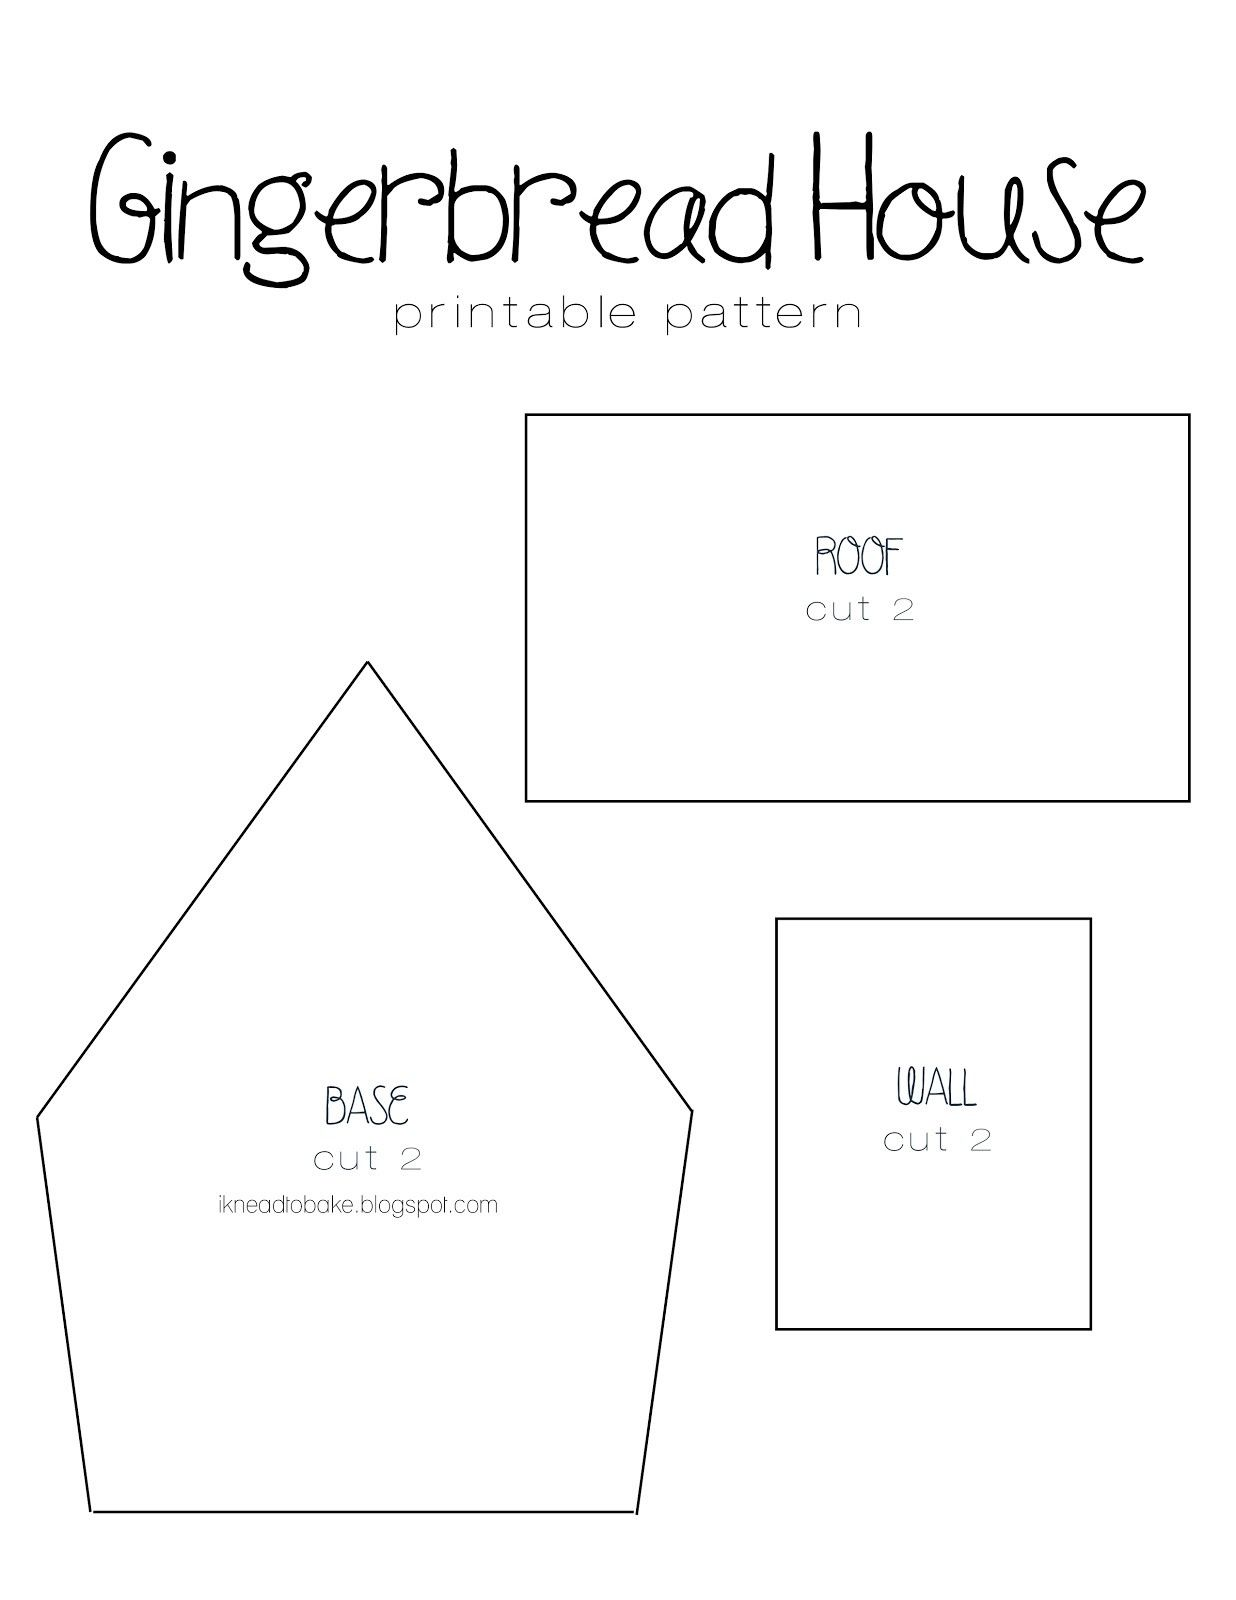 haunted gingerbread house template  Cool Haunted Gingerbread House Template Pictures Inspiration ...